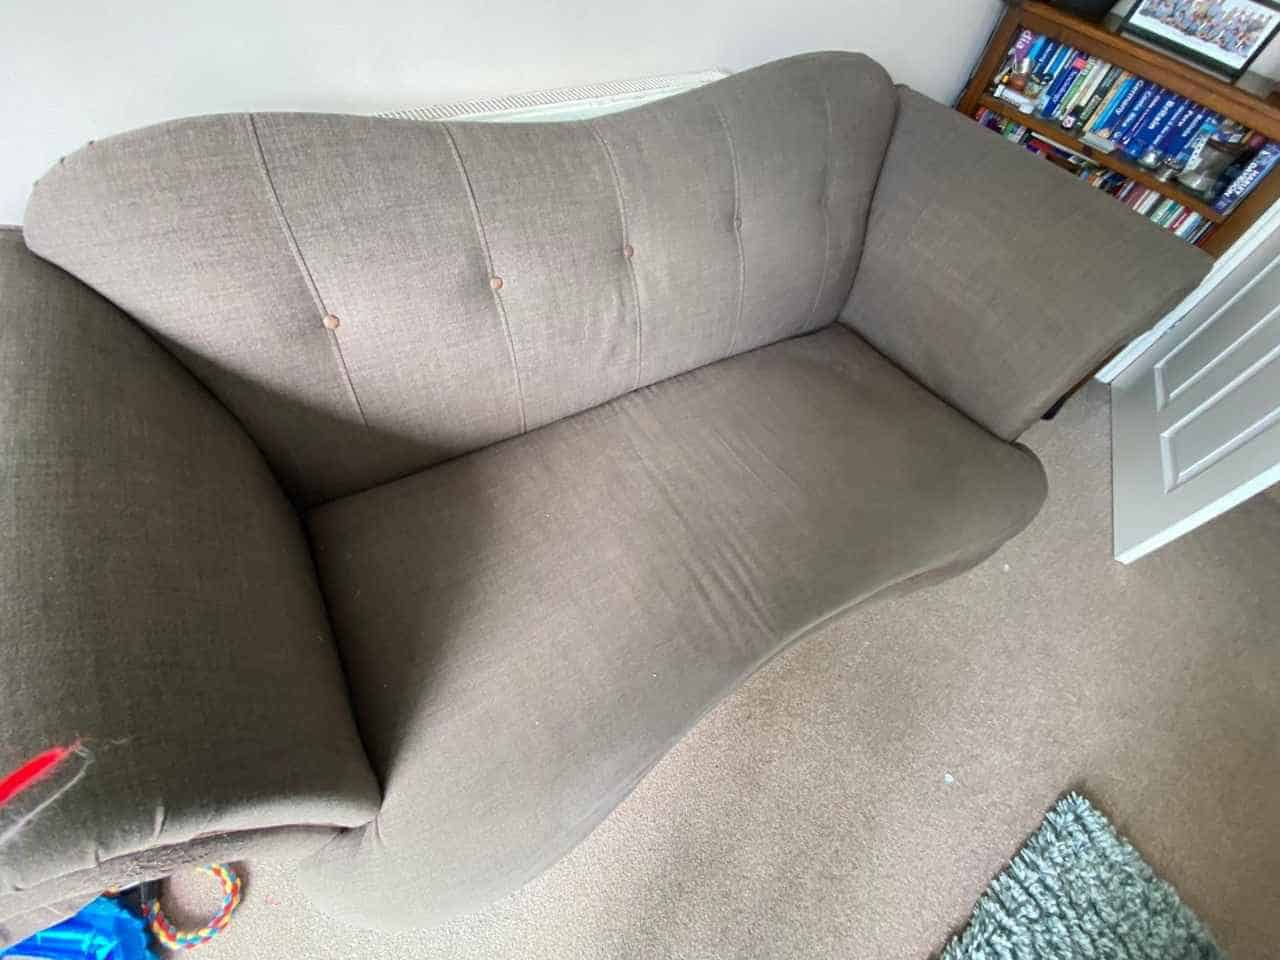 upholstery cleaning service Colden Common